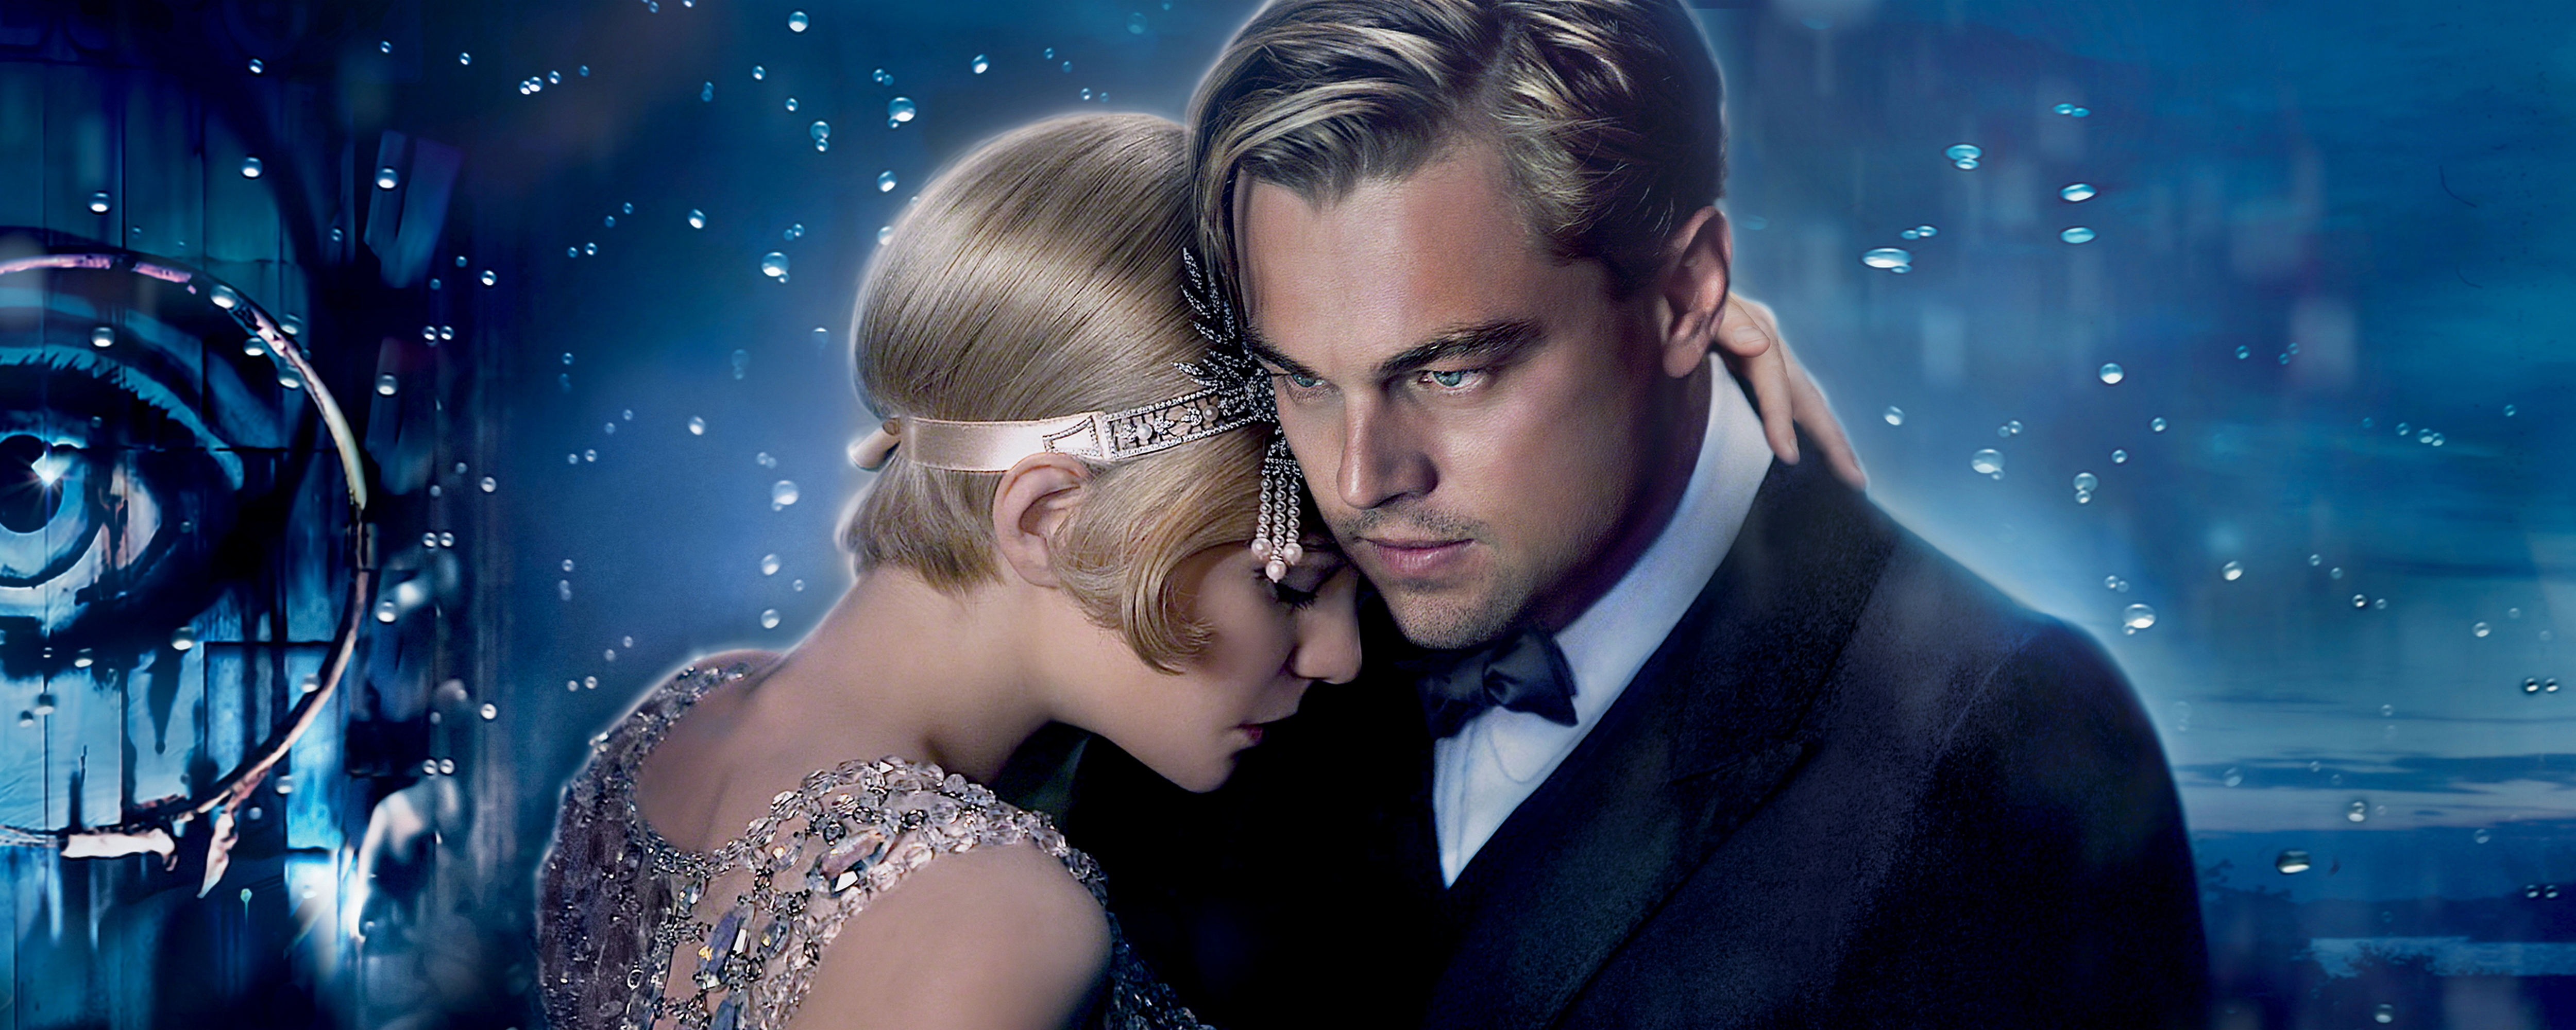 carelessness in the great gatsby essay Hollowness and shallowness of the upper class are shown in the great gatsby through tom's of jay gatsby because of the carelessness essay.